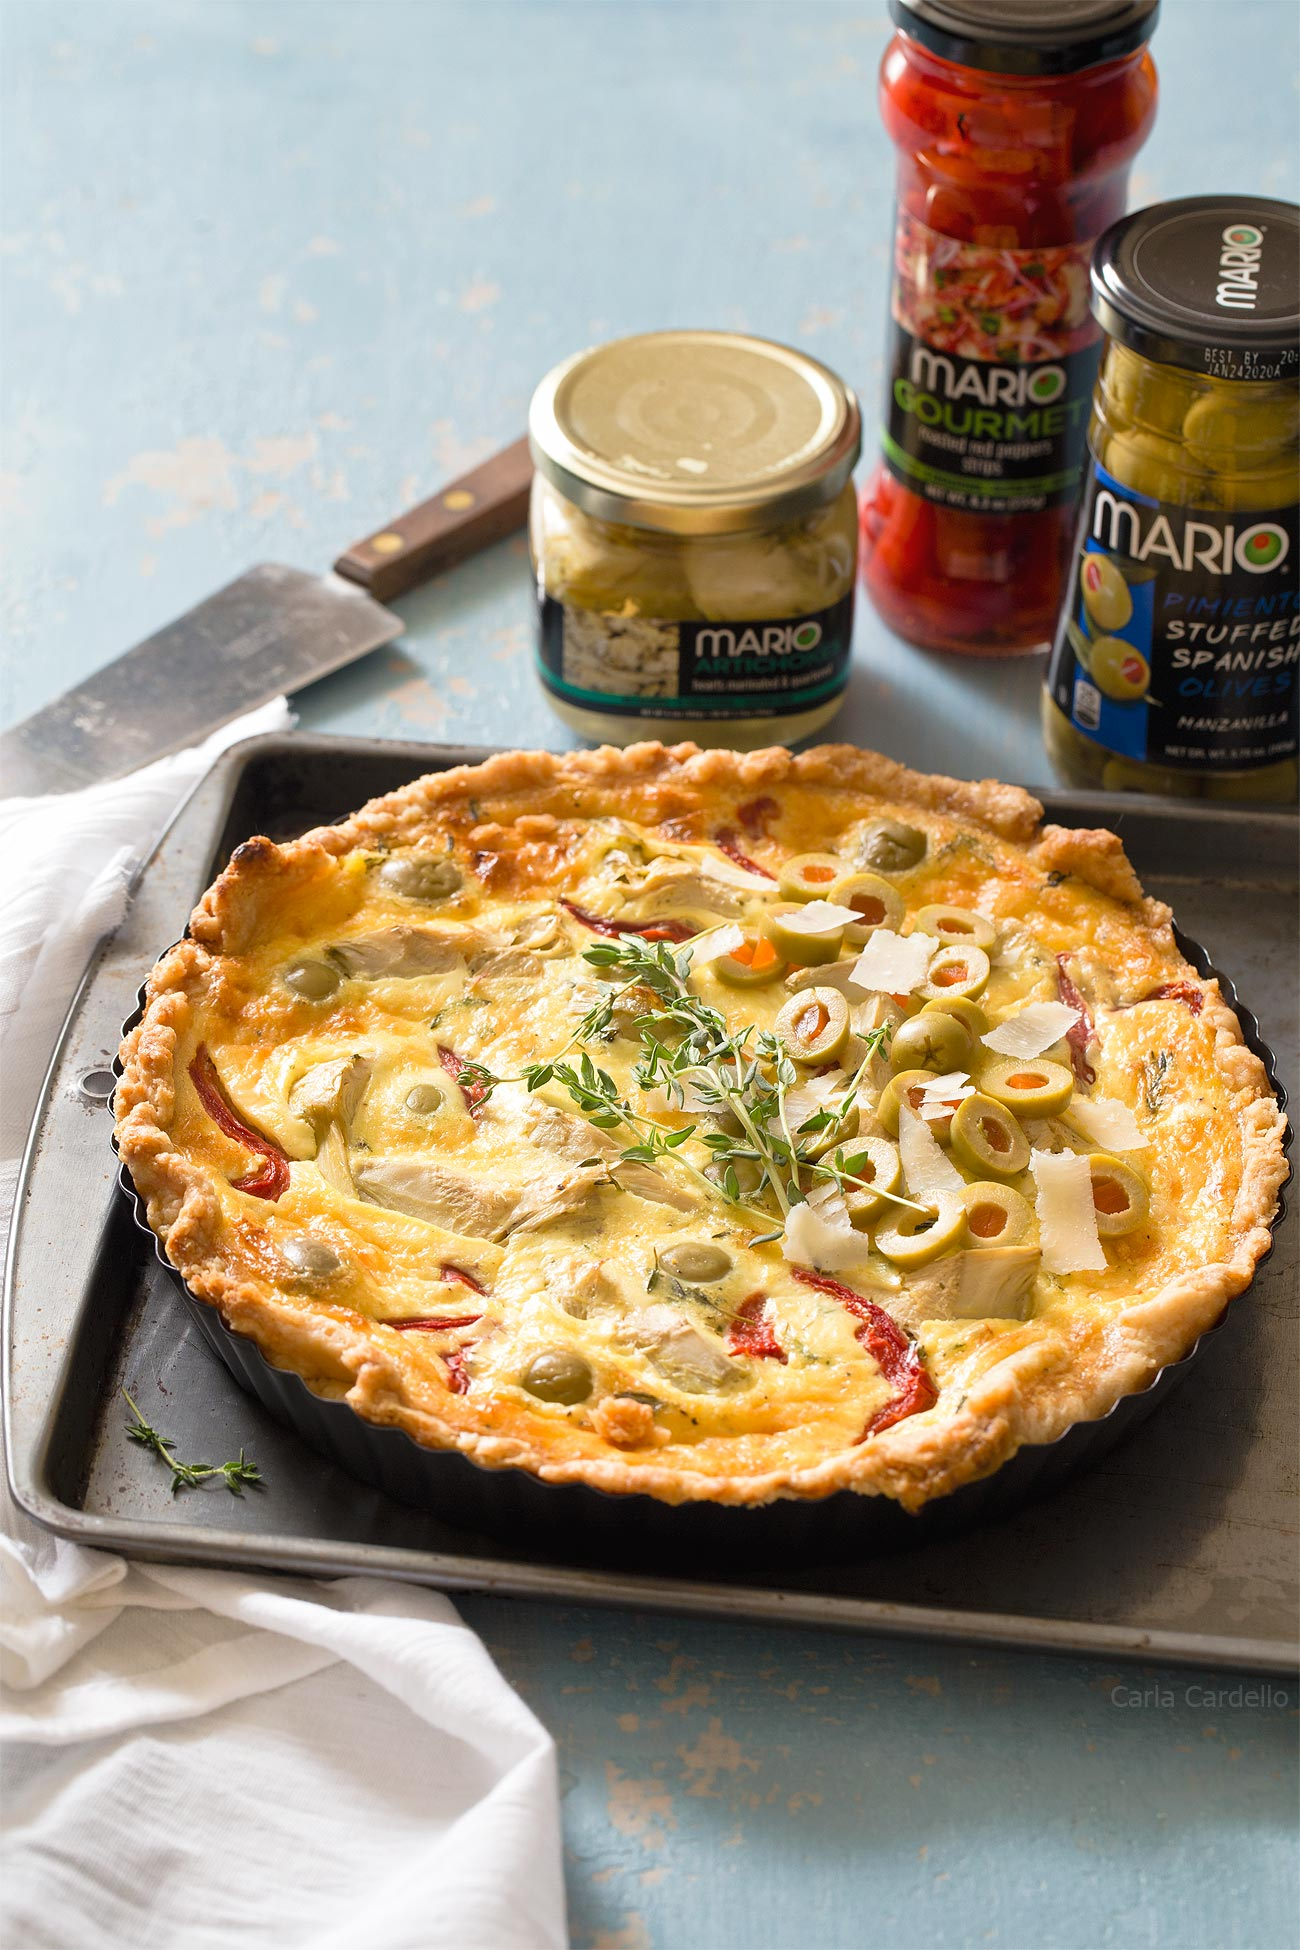 Artichoke Olive Quiche with Mario Olive products